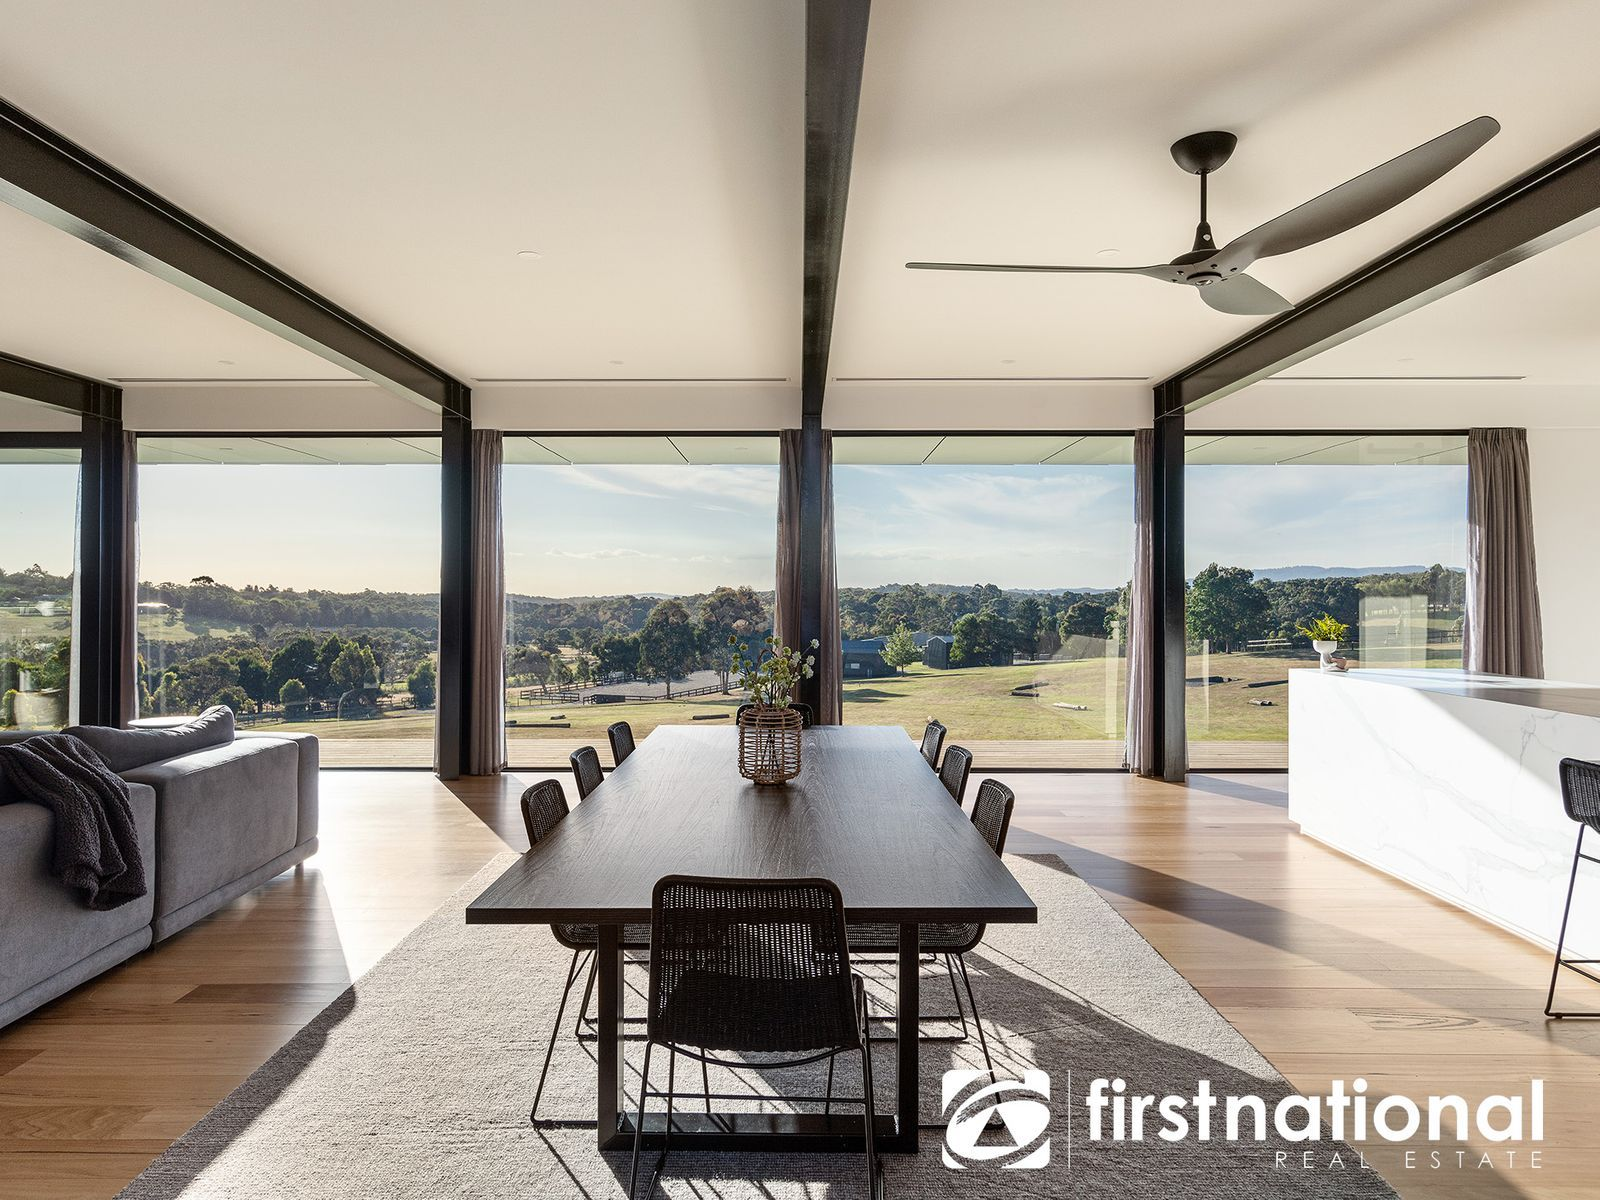 Living area overlooking breathtaking equestrian property